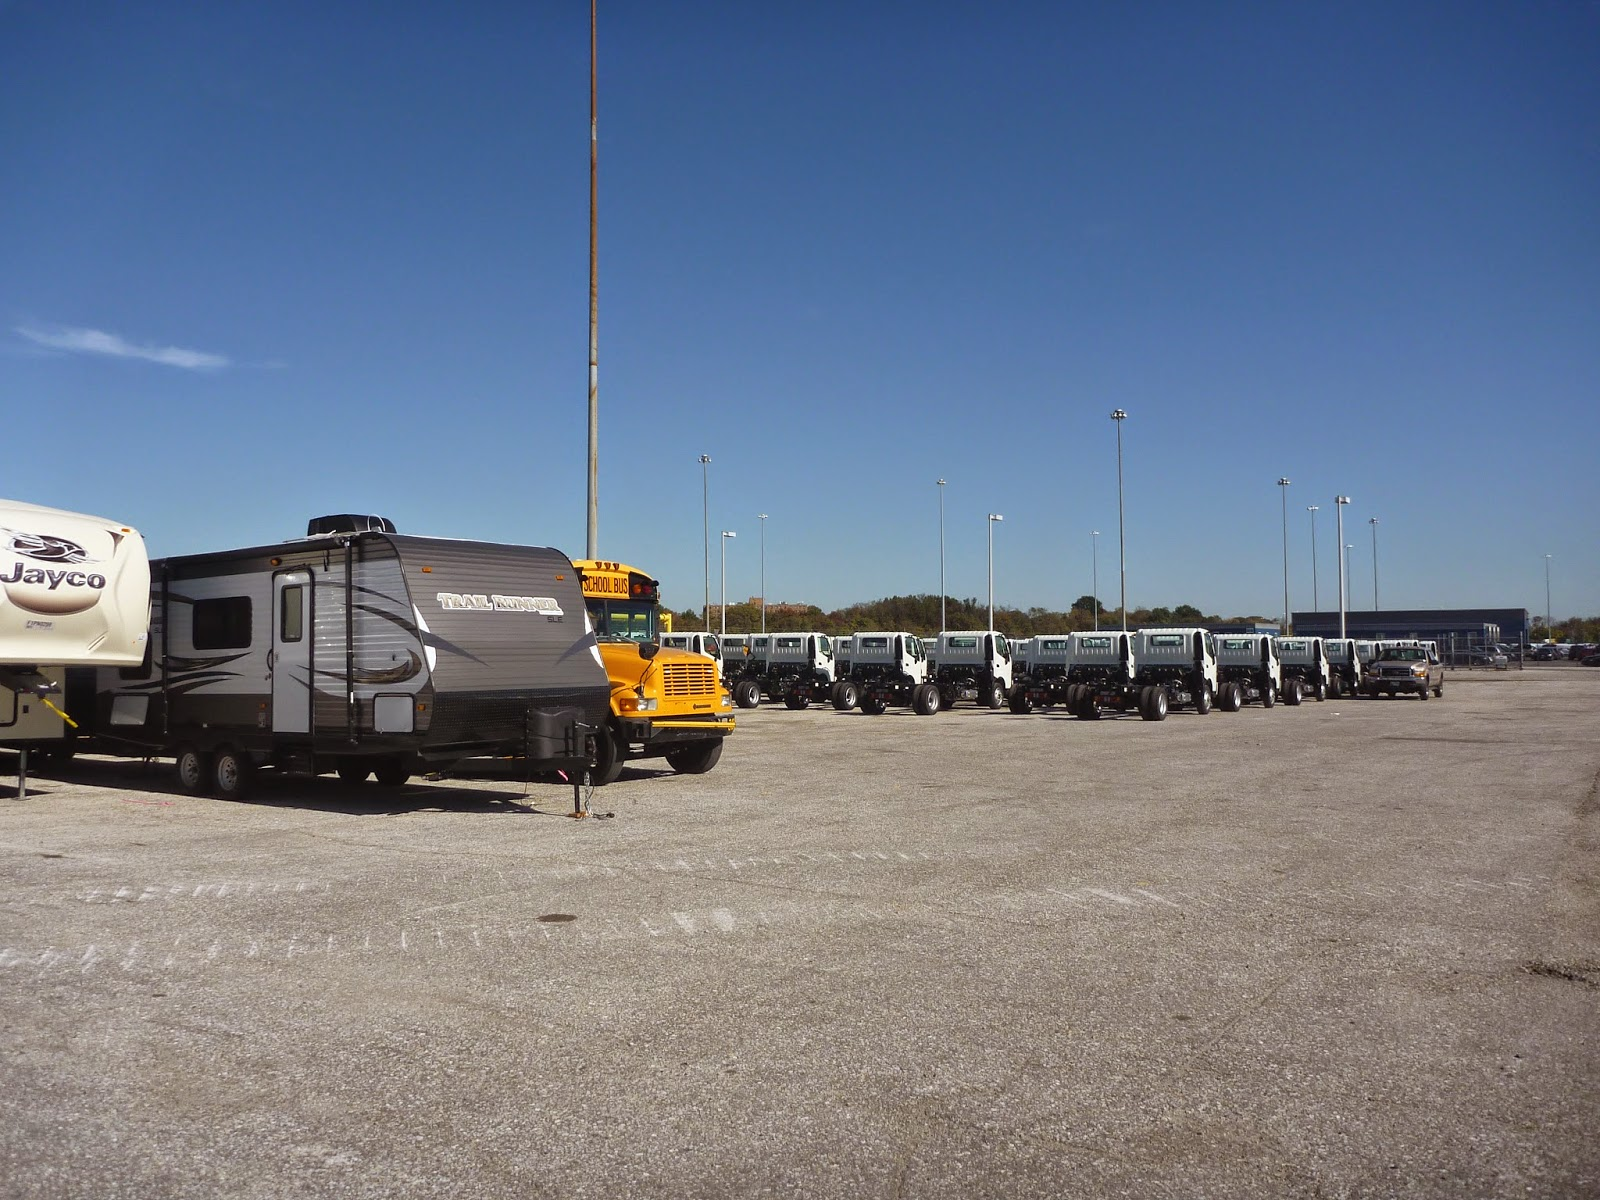 Mistubushi / Isuzu chassis cab trucks waiting to be loaded at Baltimore / Dundalk docks